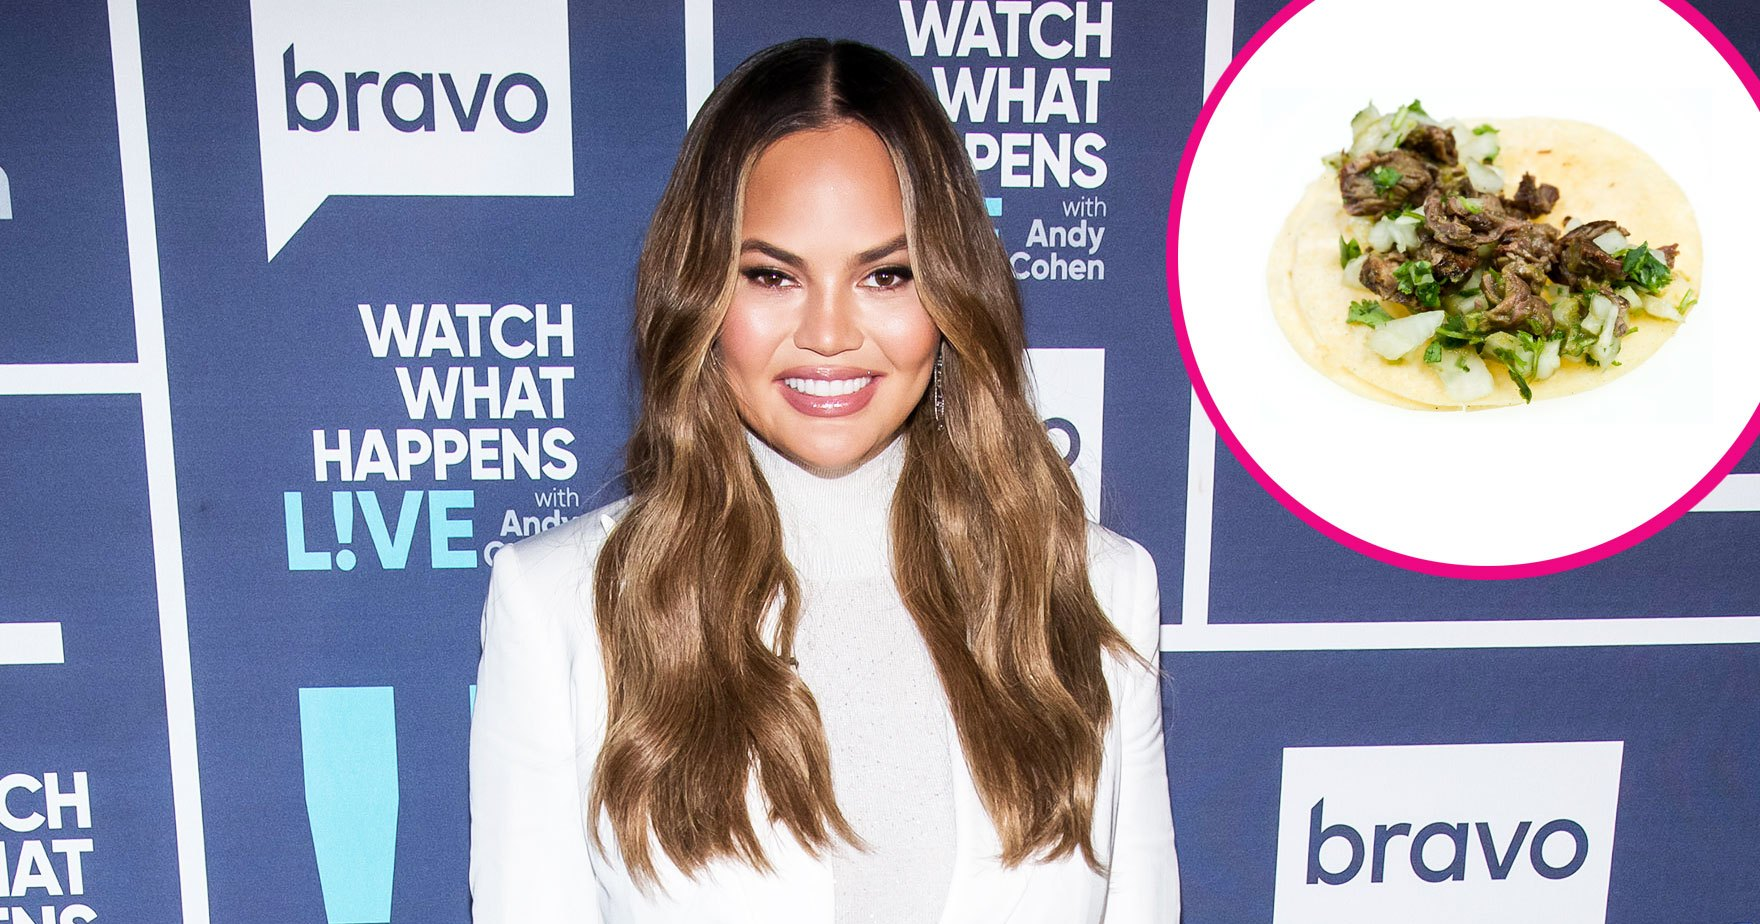 Chrissy Teigen Suggests Genius Delivery Hack for Taco Bell That Would Prevent 'Soggy' Meals